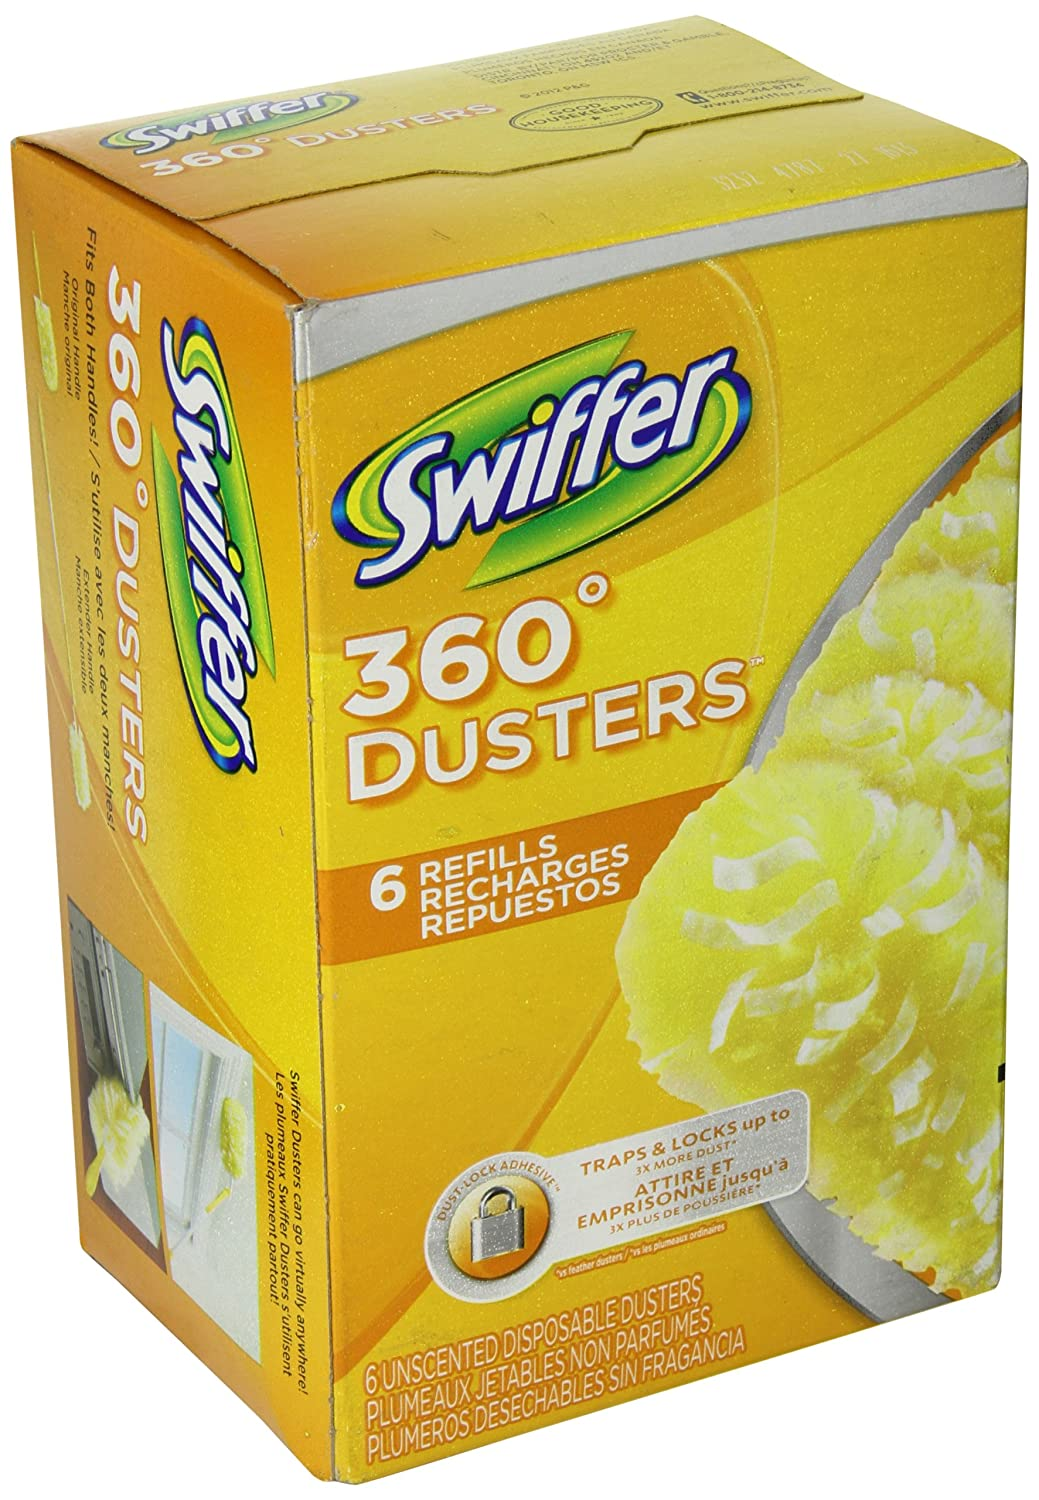 Swiffer 16944 Unscented Duster Refills (1 Box of 6 Refills) runail duster and